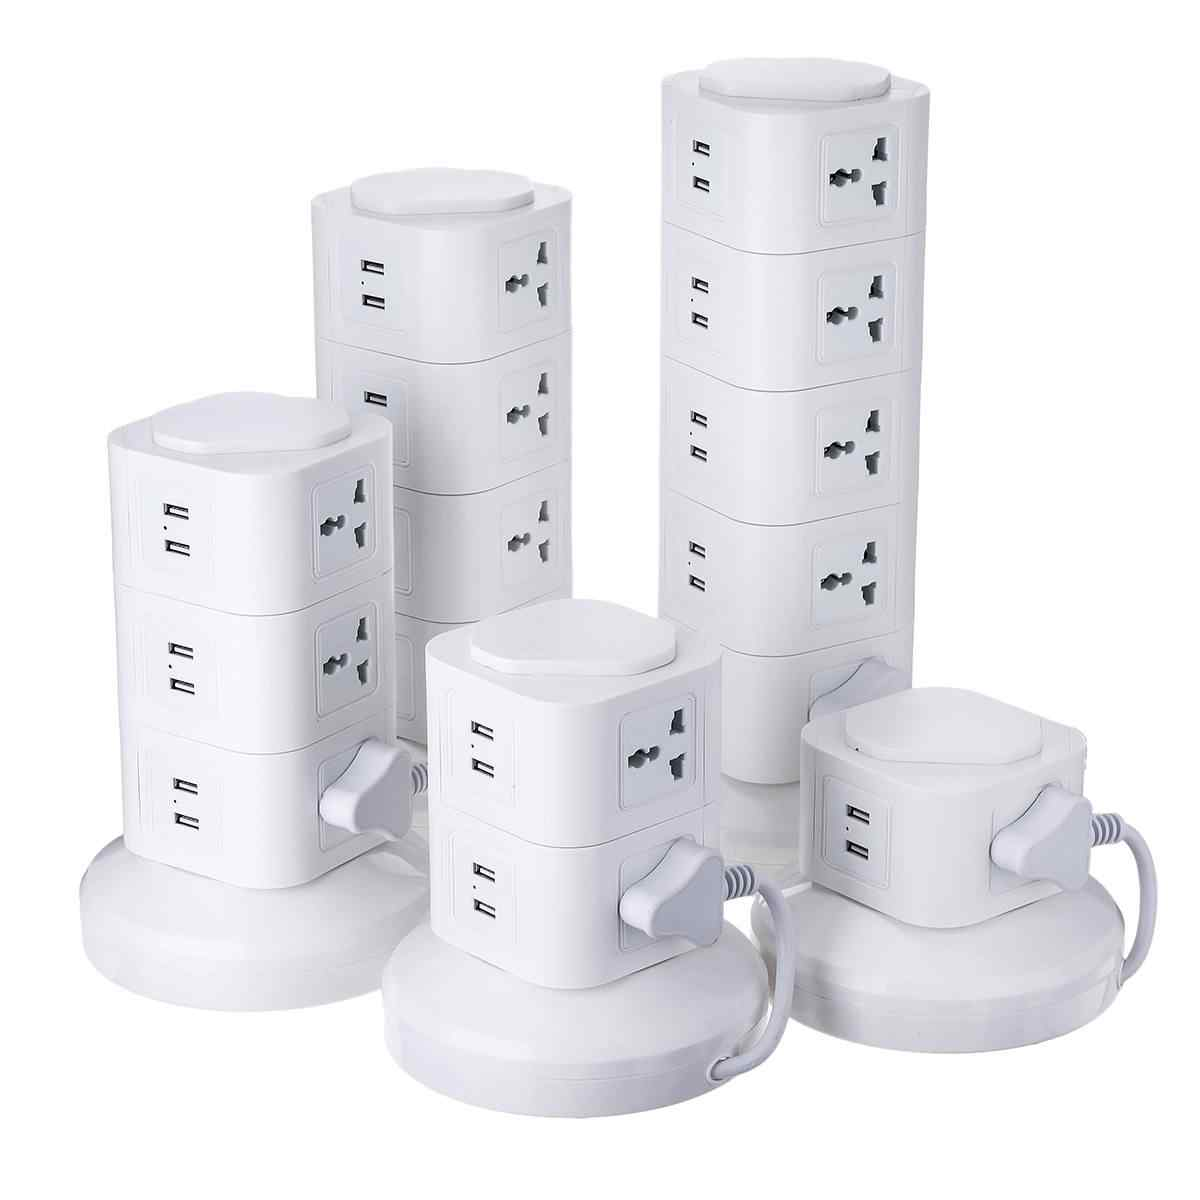 Multi Layer สายไฟแนวตั้ง Powerboard Multi Layer แนวตั้ง Socket 6 พอร์ต USB Outlet Power Strip Protector